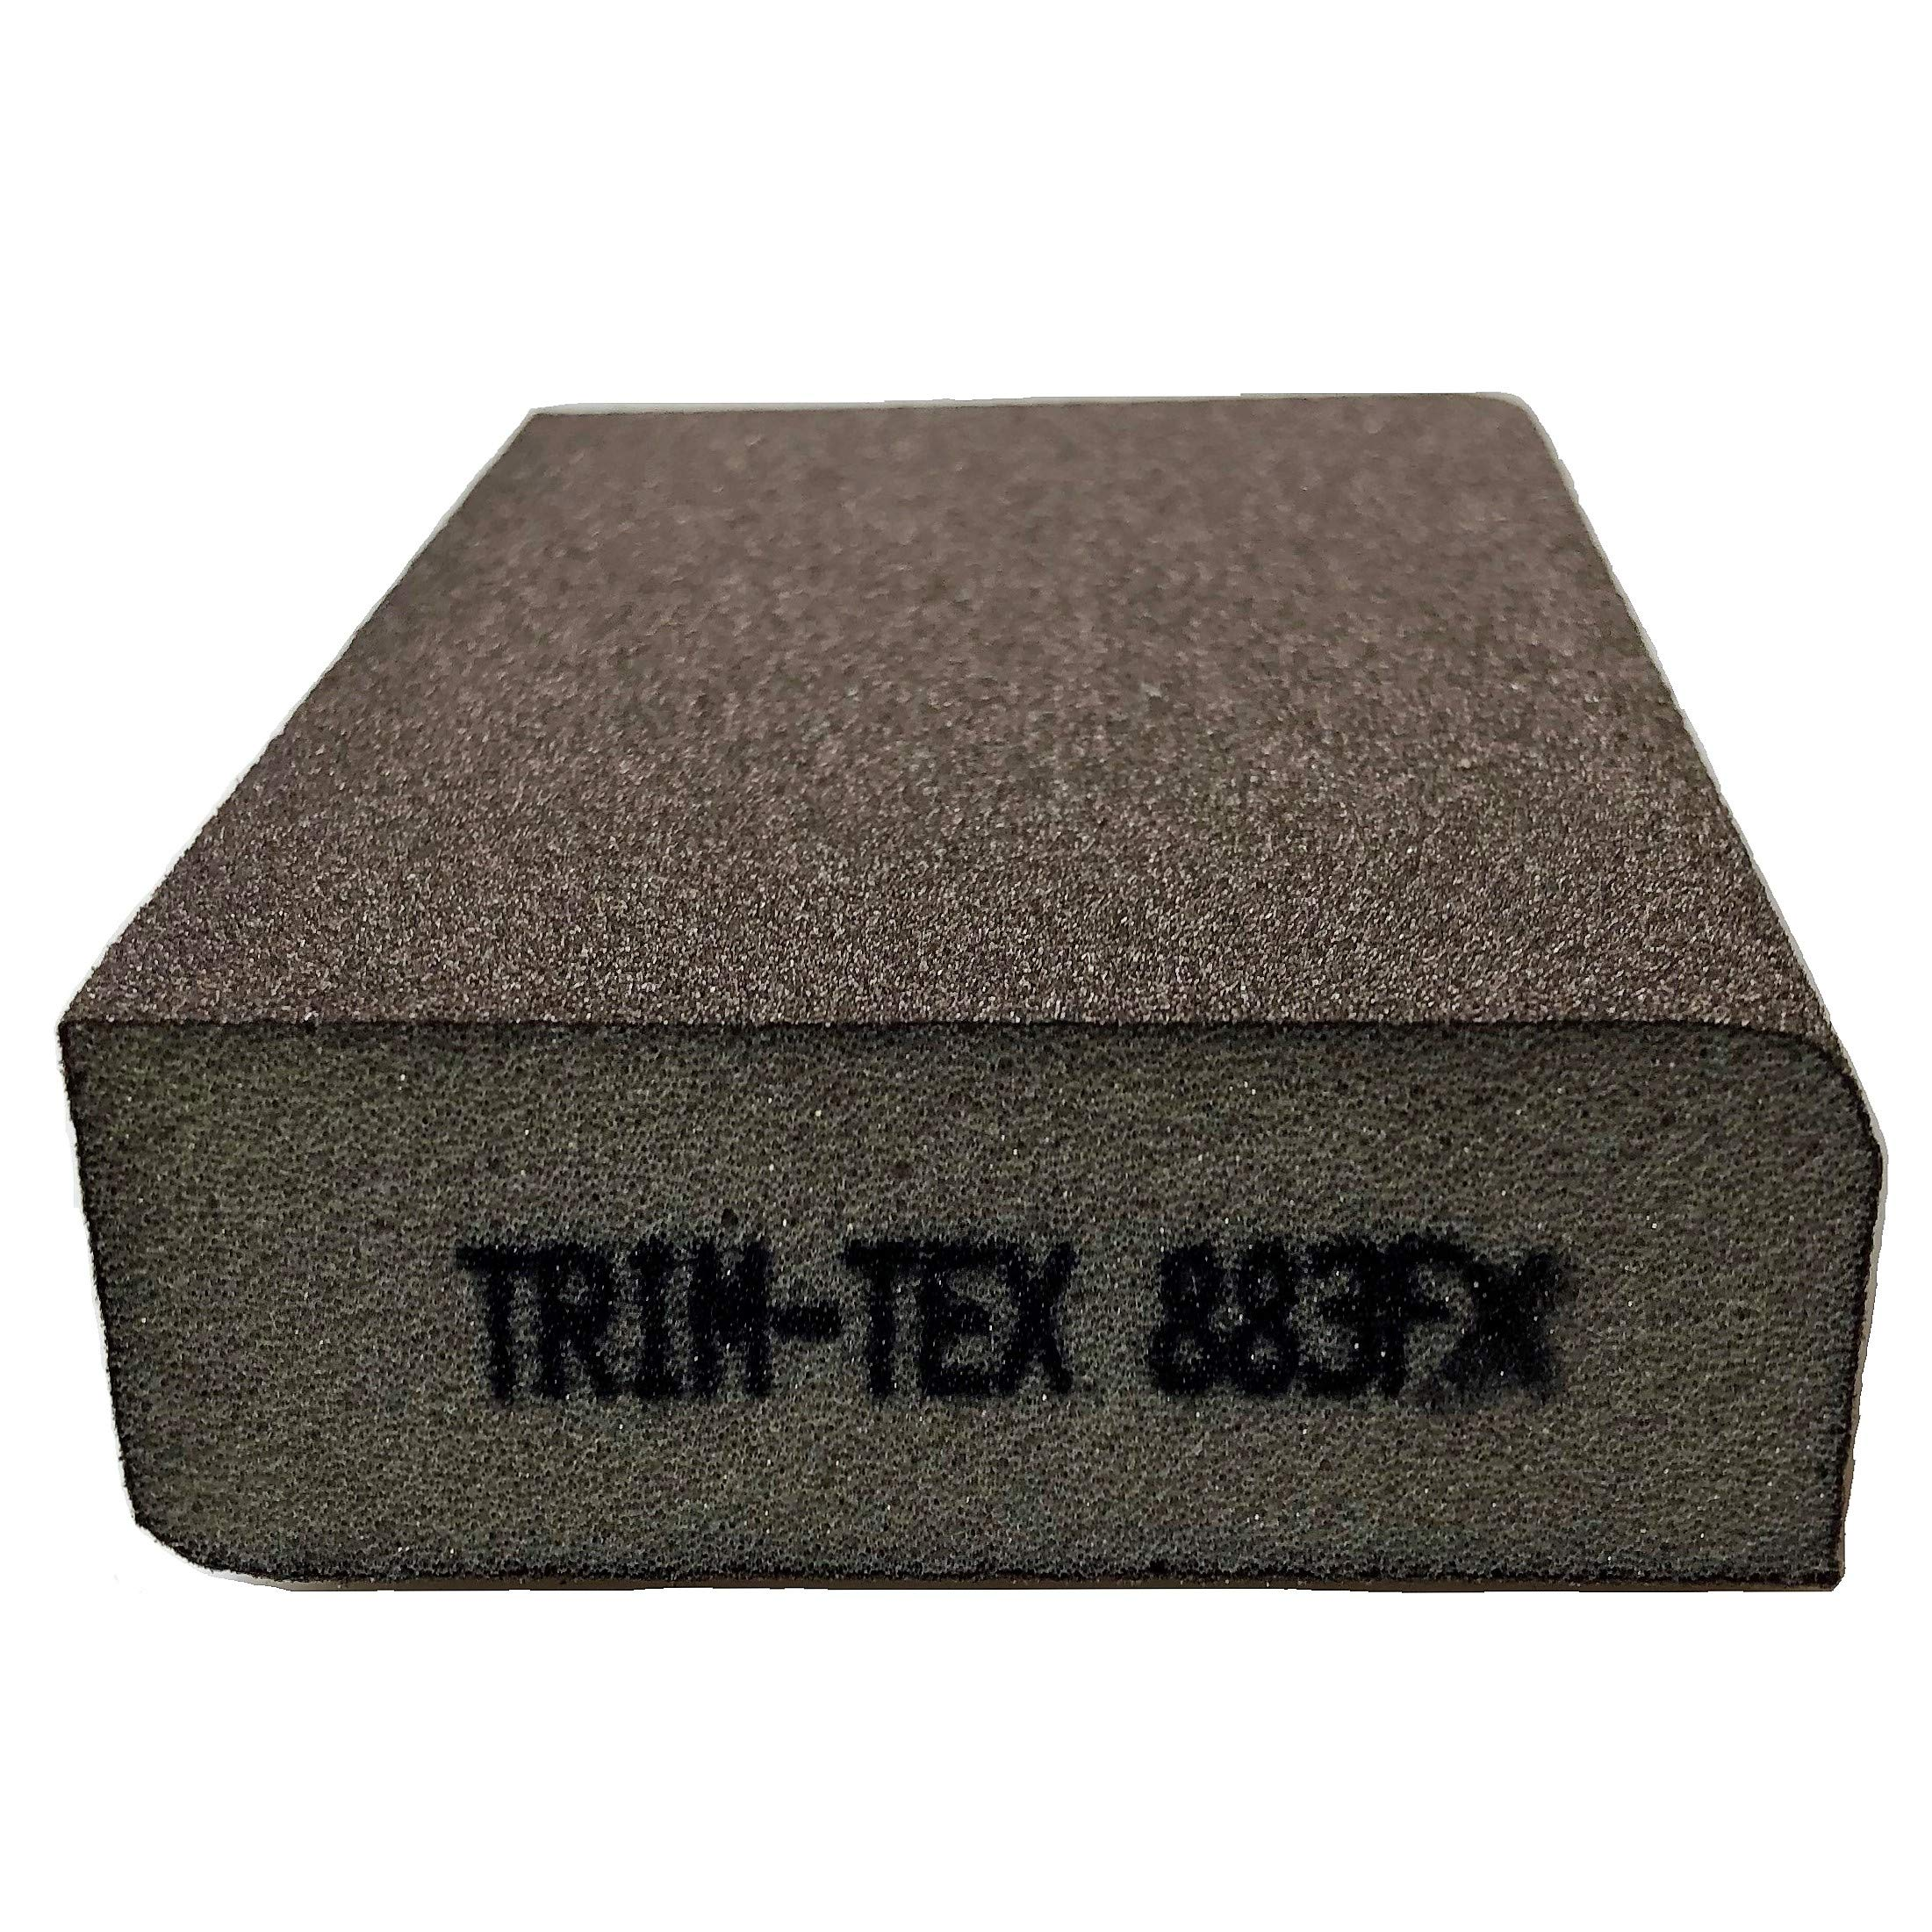 Standard Sanding Block Extra Fine Grit (Box of 24) by Trim-Tex